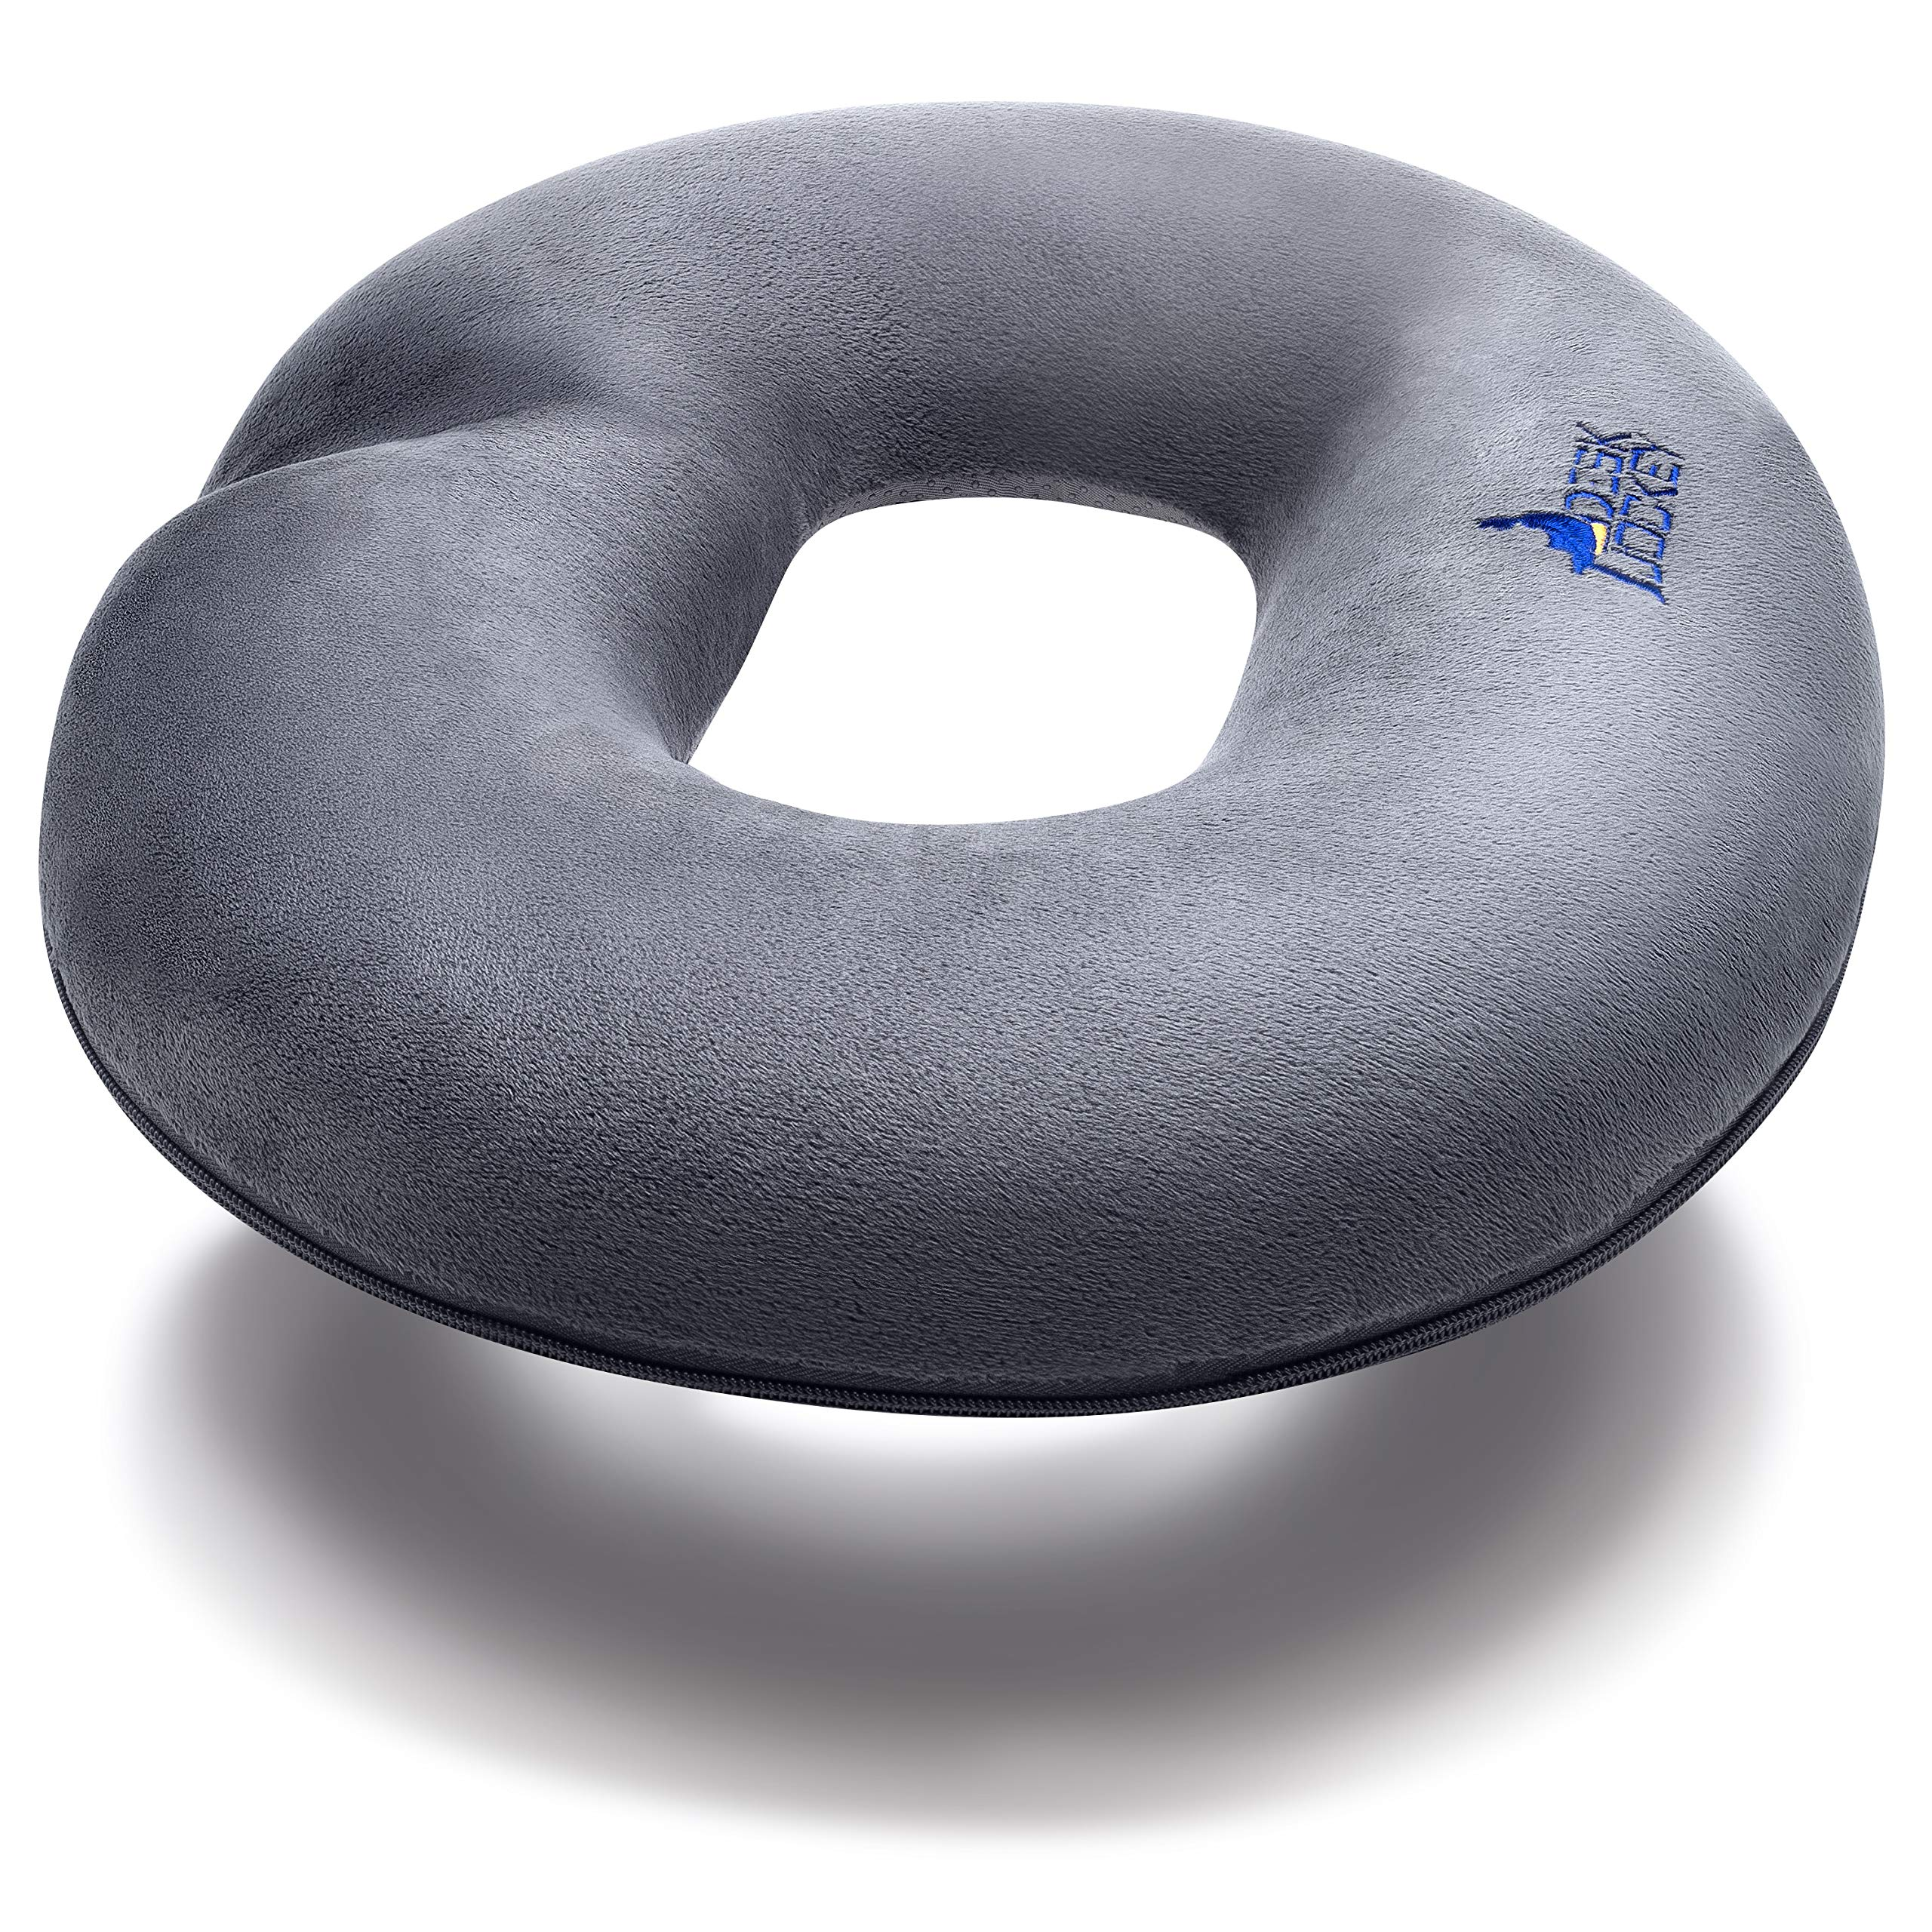 Donut Pillow - Clinical Therapeutic Grade Seat Cushion - Round Ring for Hemorrhoids, Coccyx, Tailbone Pain